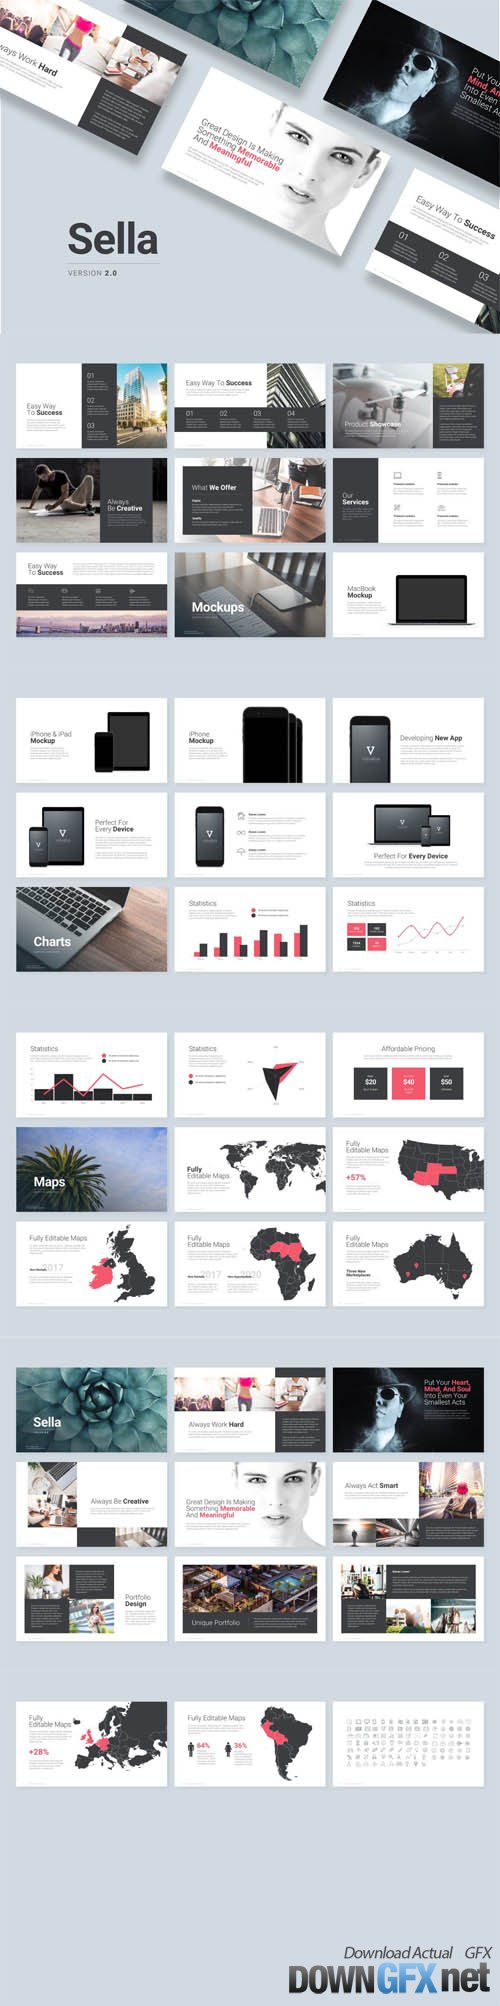 Sella 2.0 Powerpoint Template